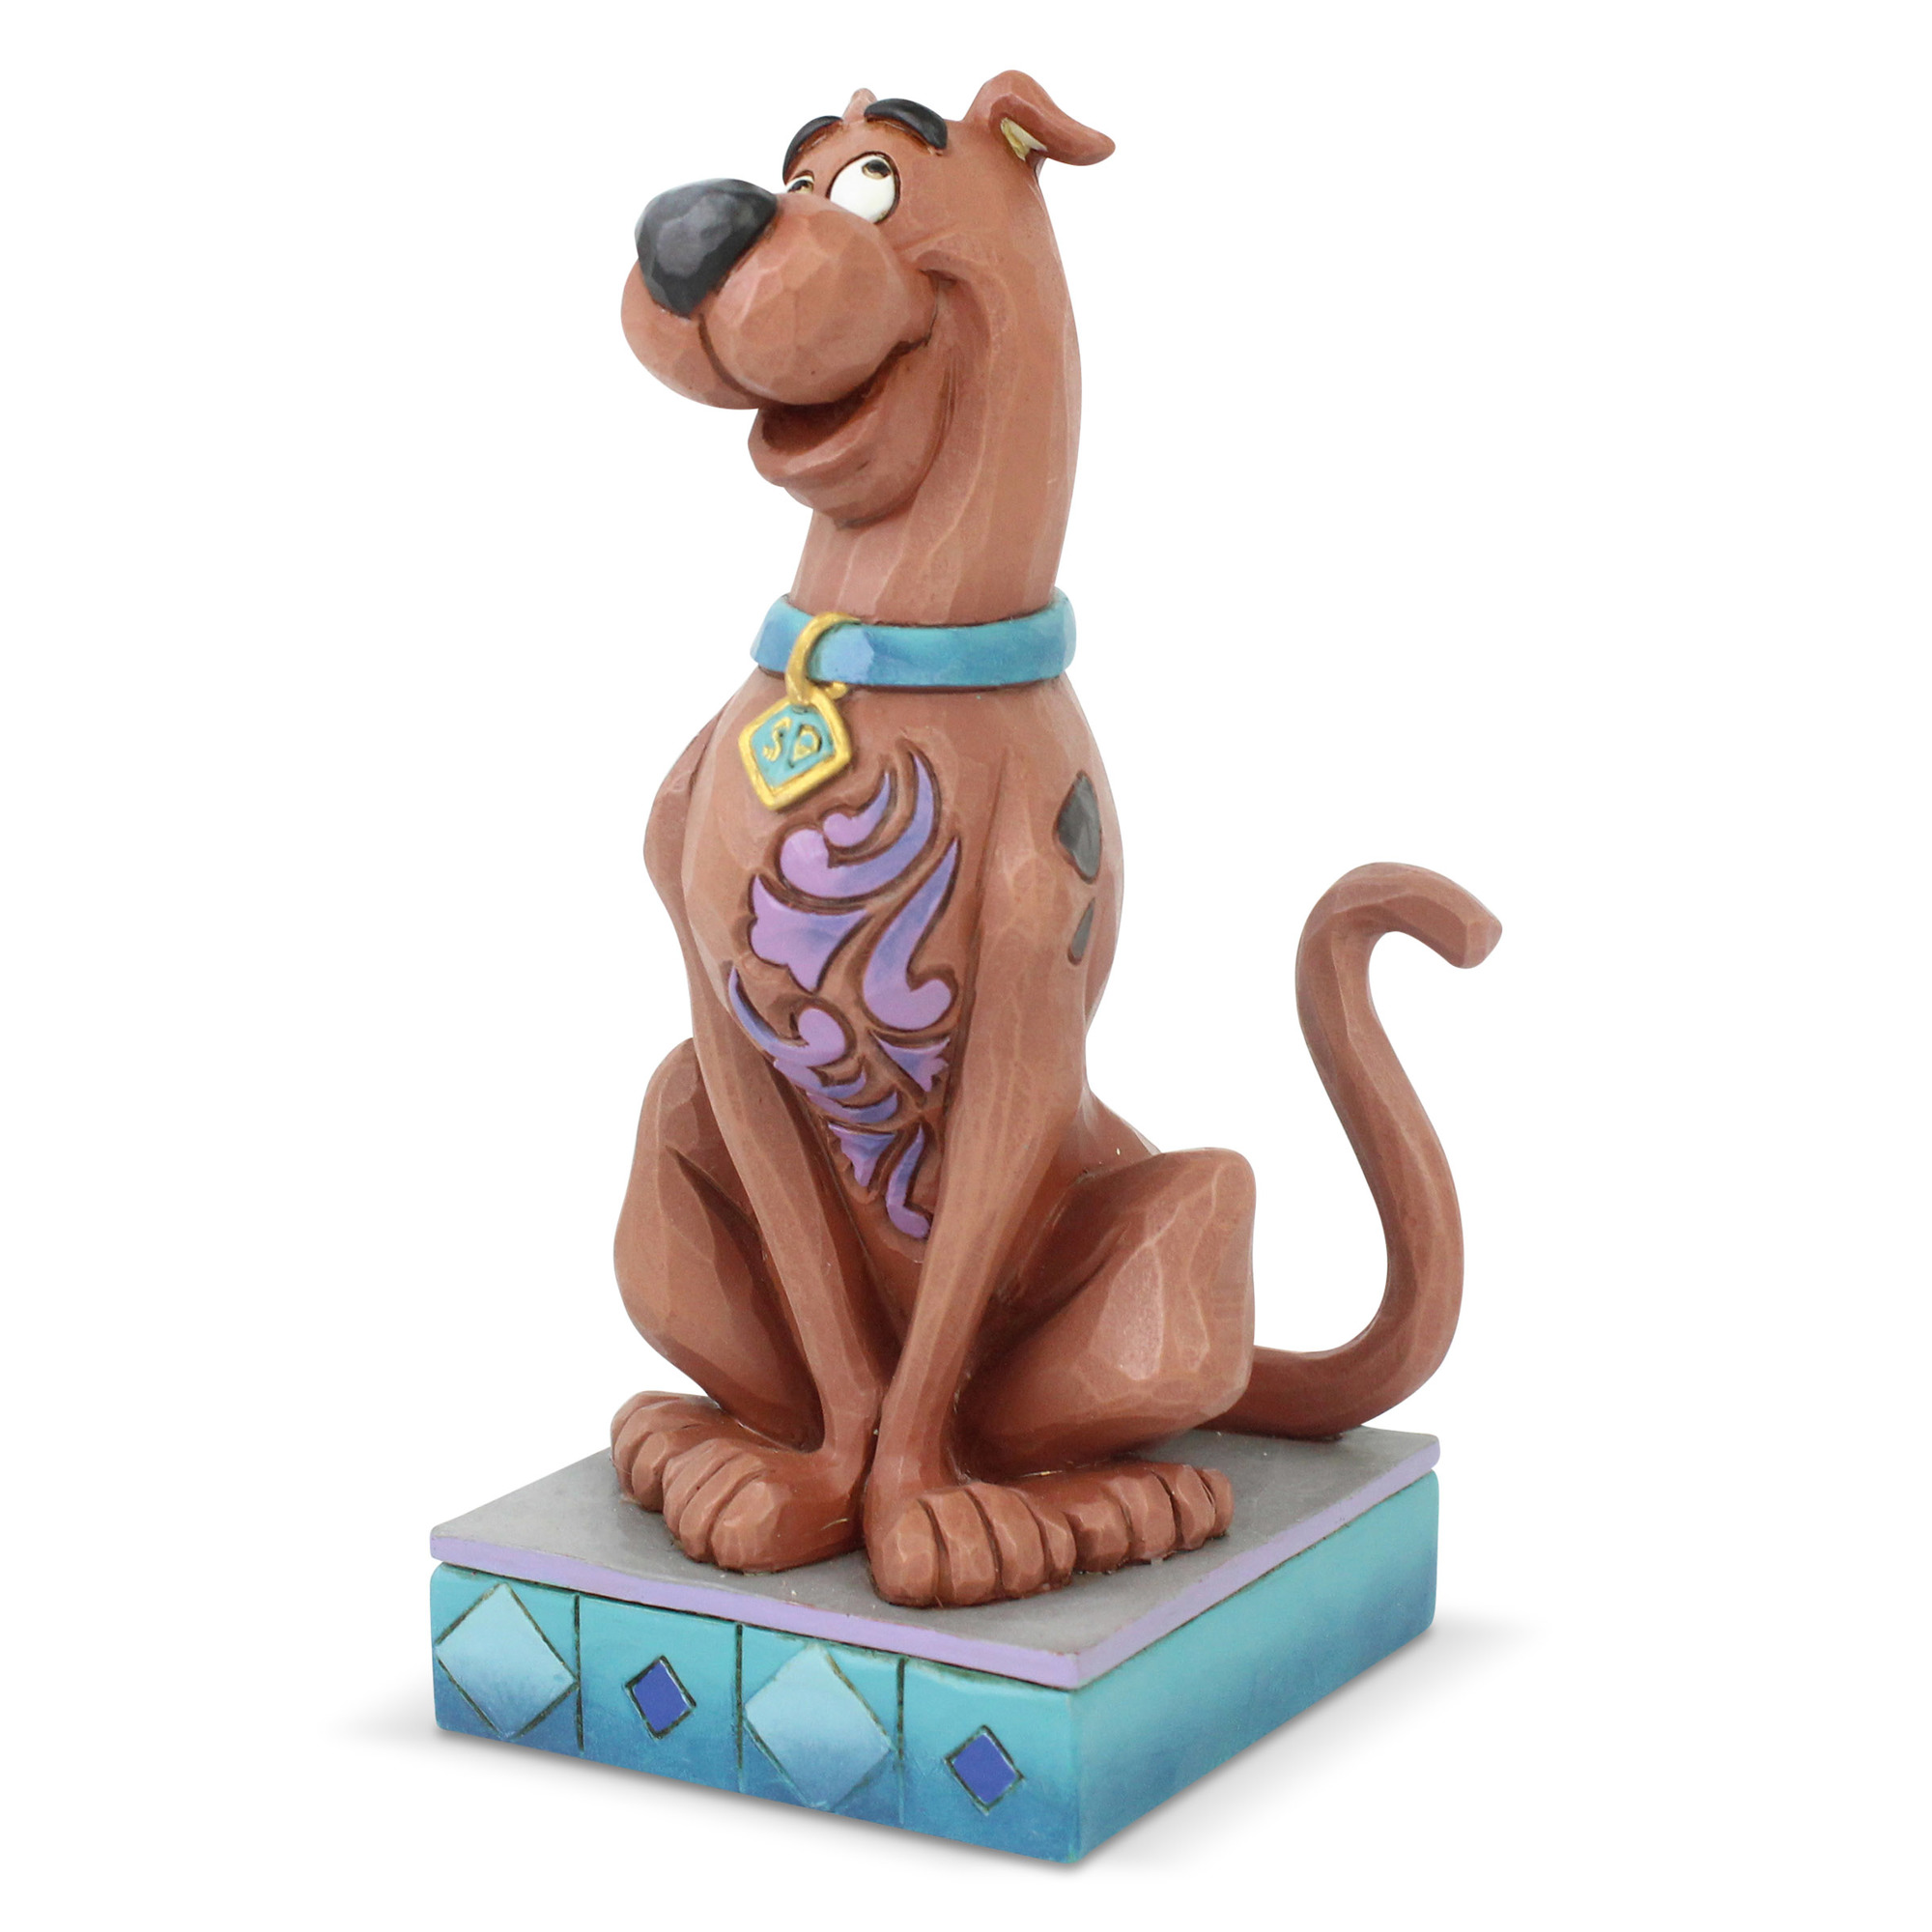 Scooby-Doo Jim Shore Statue